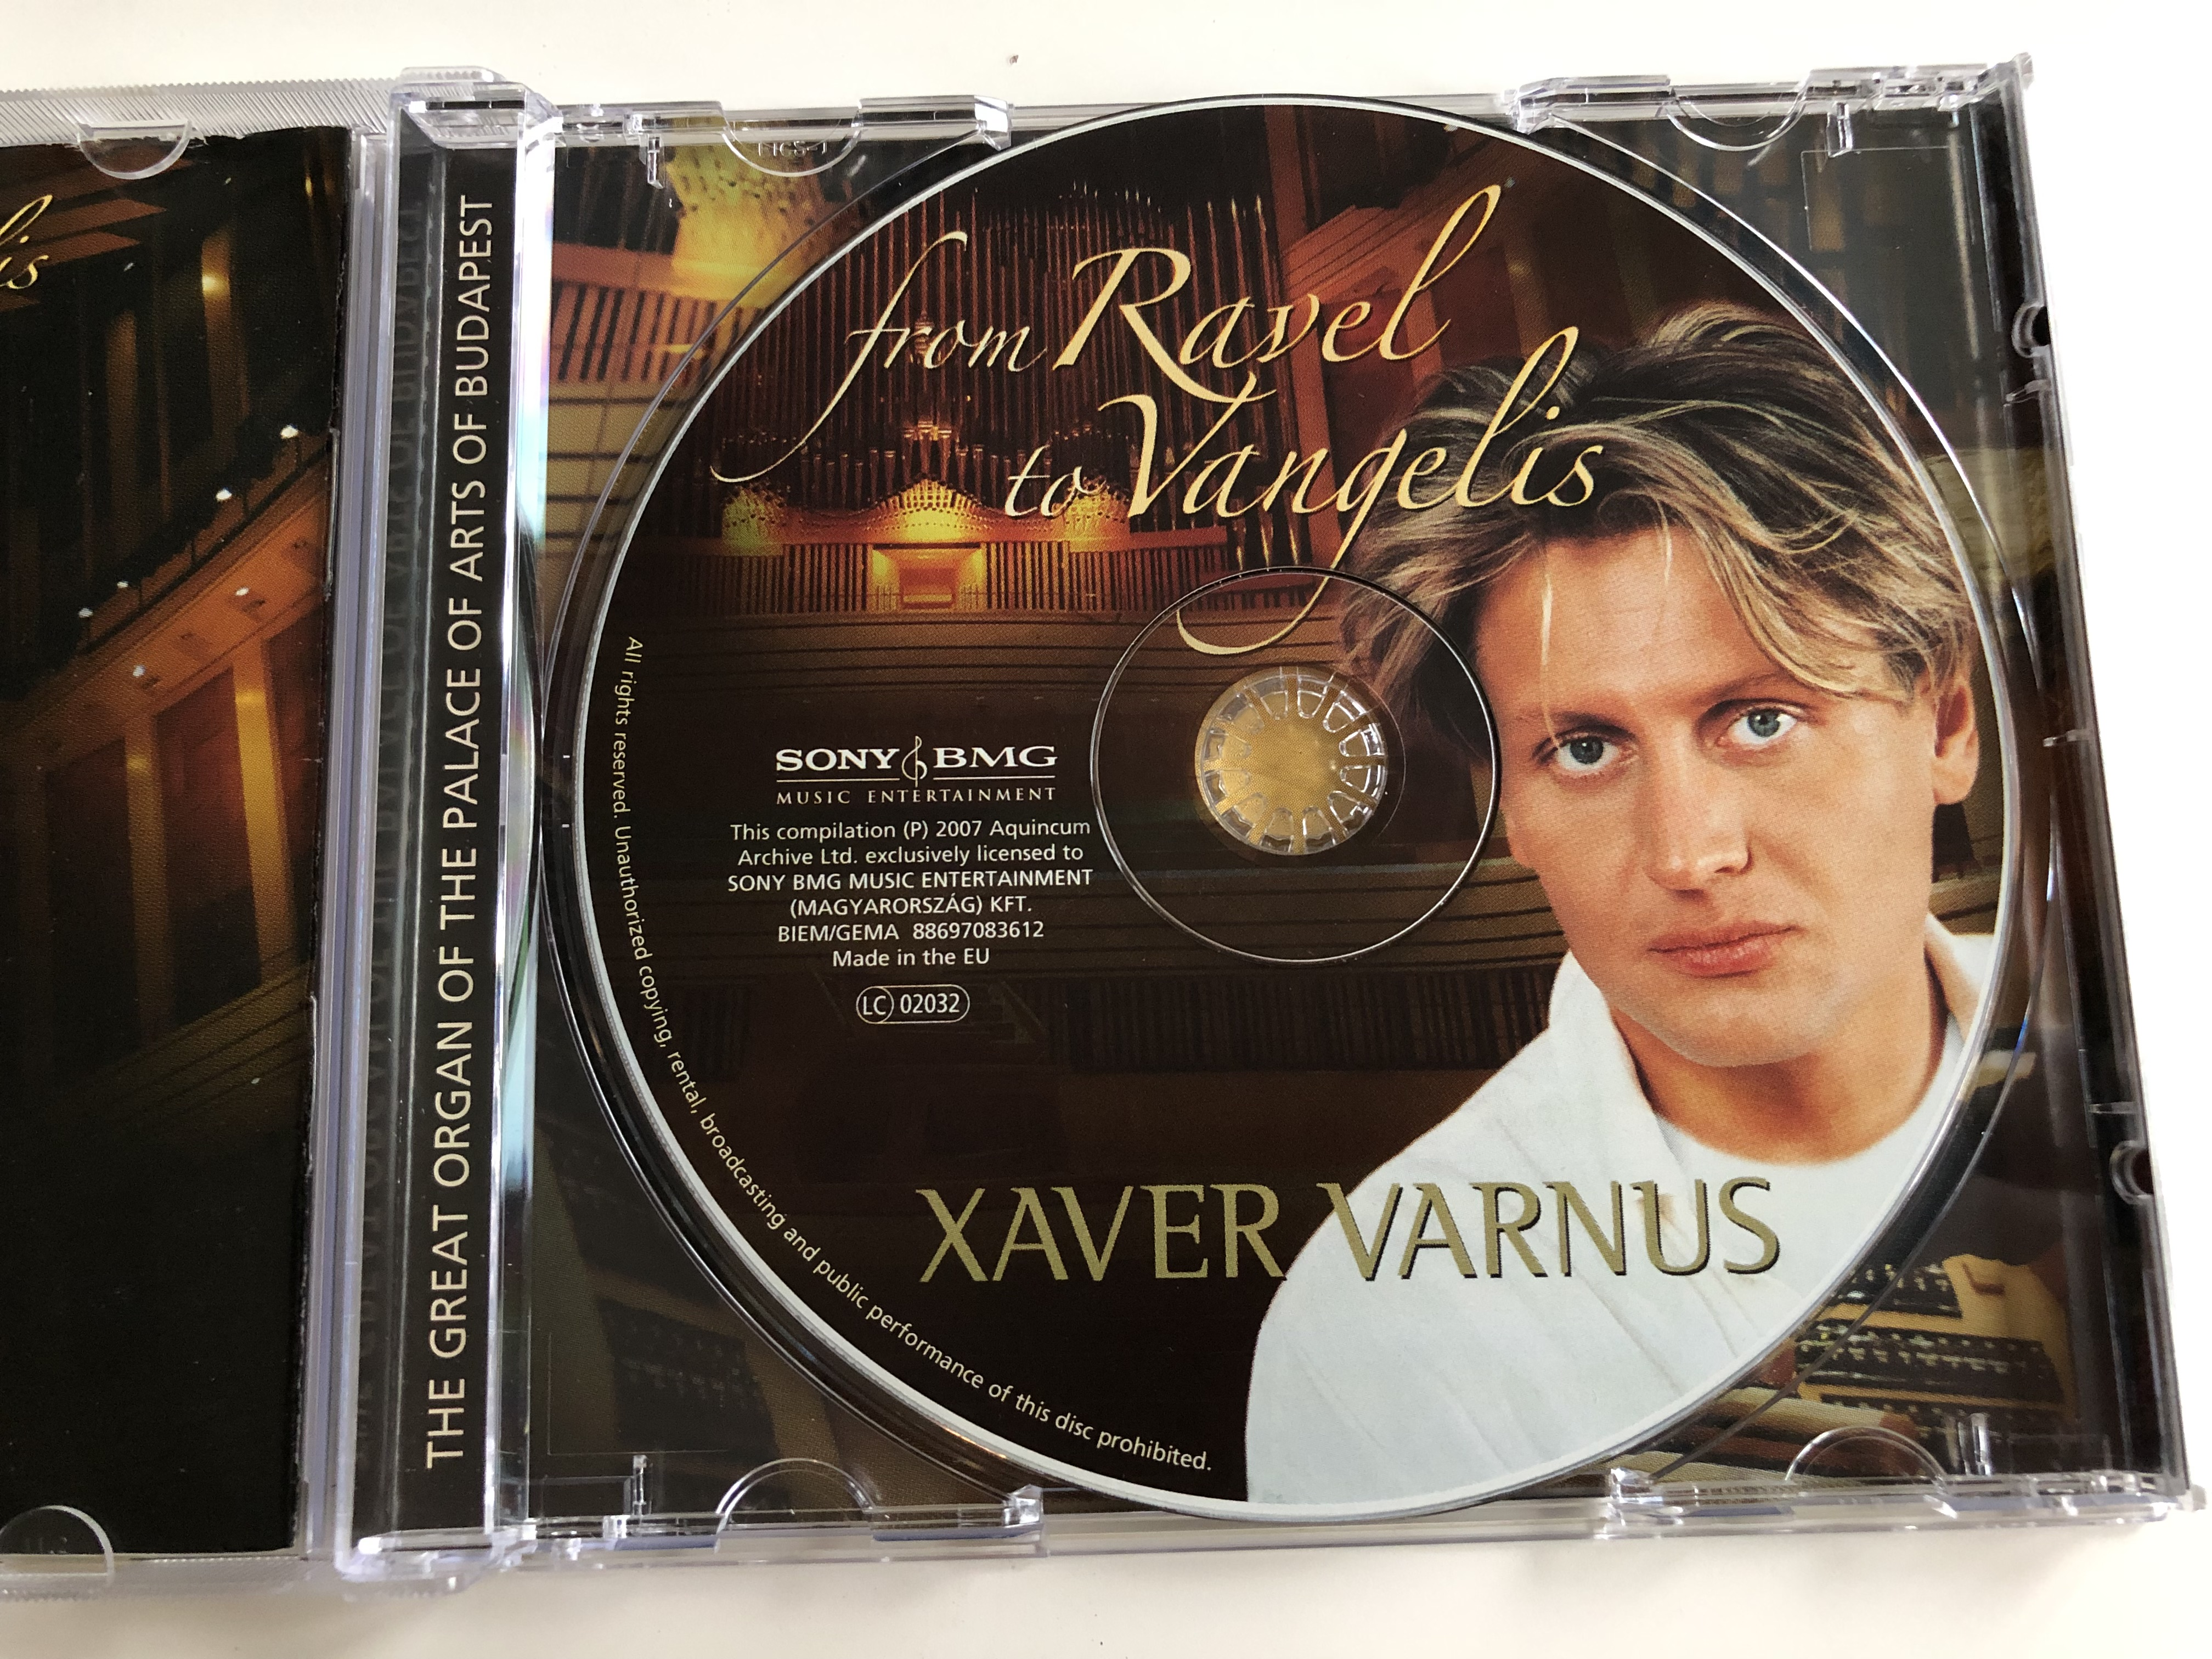 -xaver-varnus-the-legendary-organist-from-ravel-to-vangelis-featuring-sir-georg-solti-brass-ensemble-talamba-percussion-group-audio-cd-2007-sony-bmg-7-.jpg